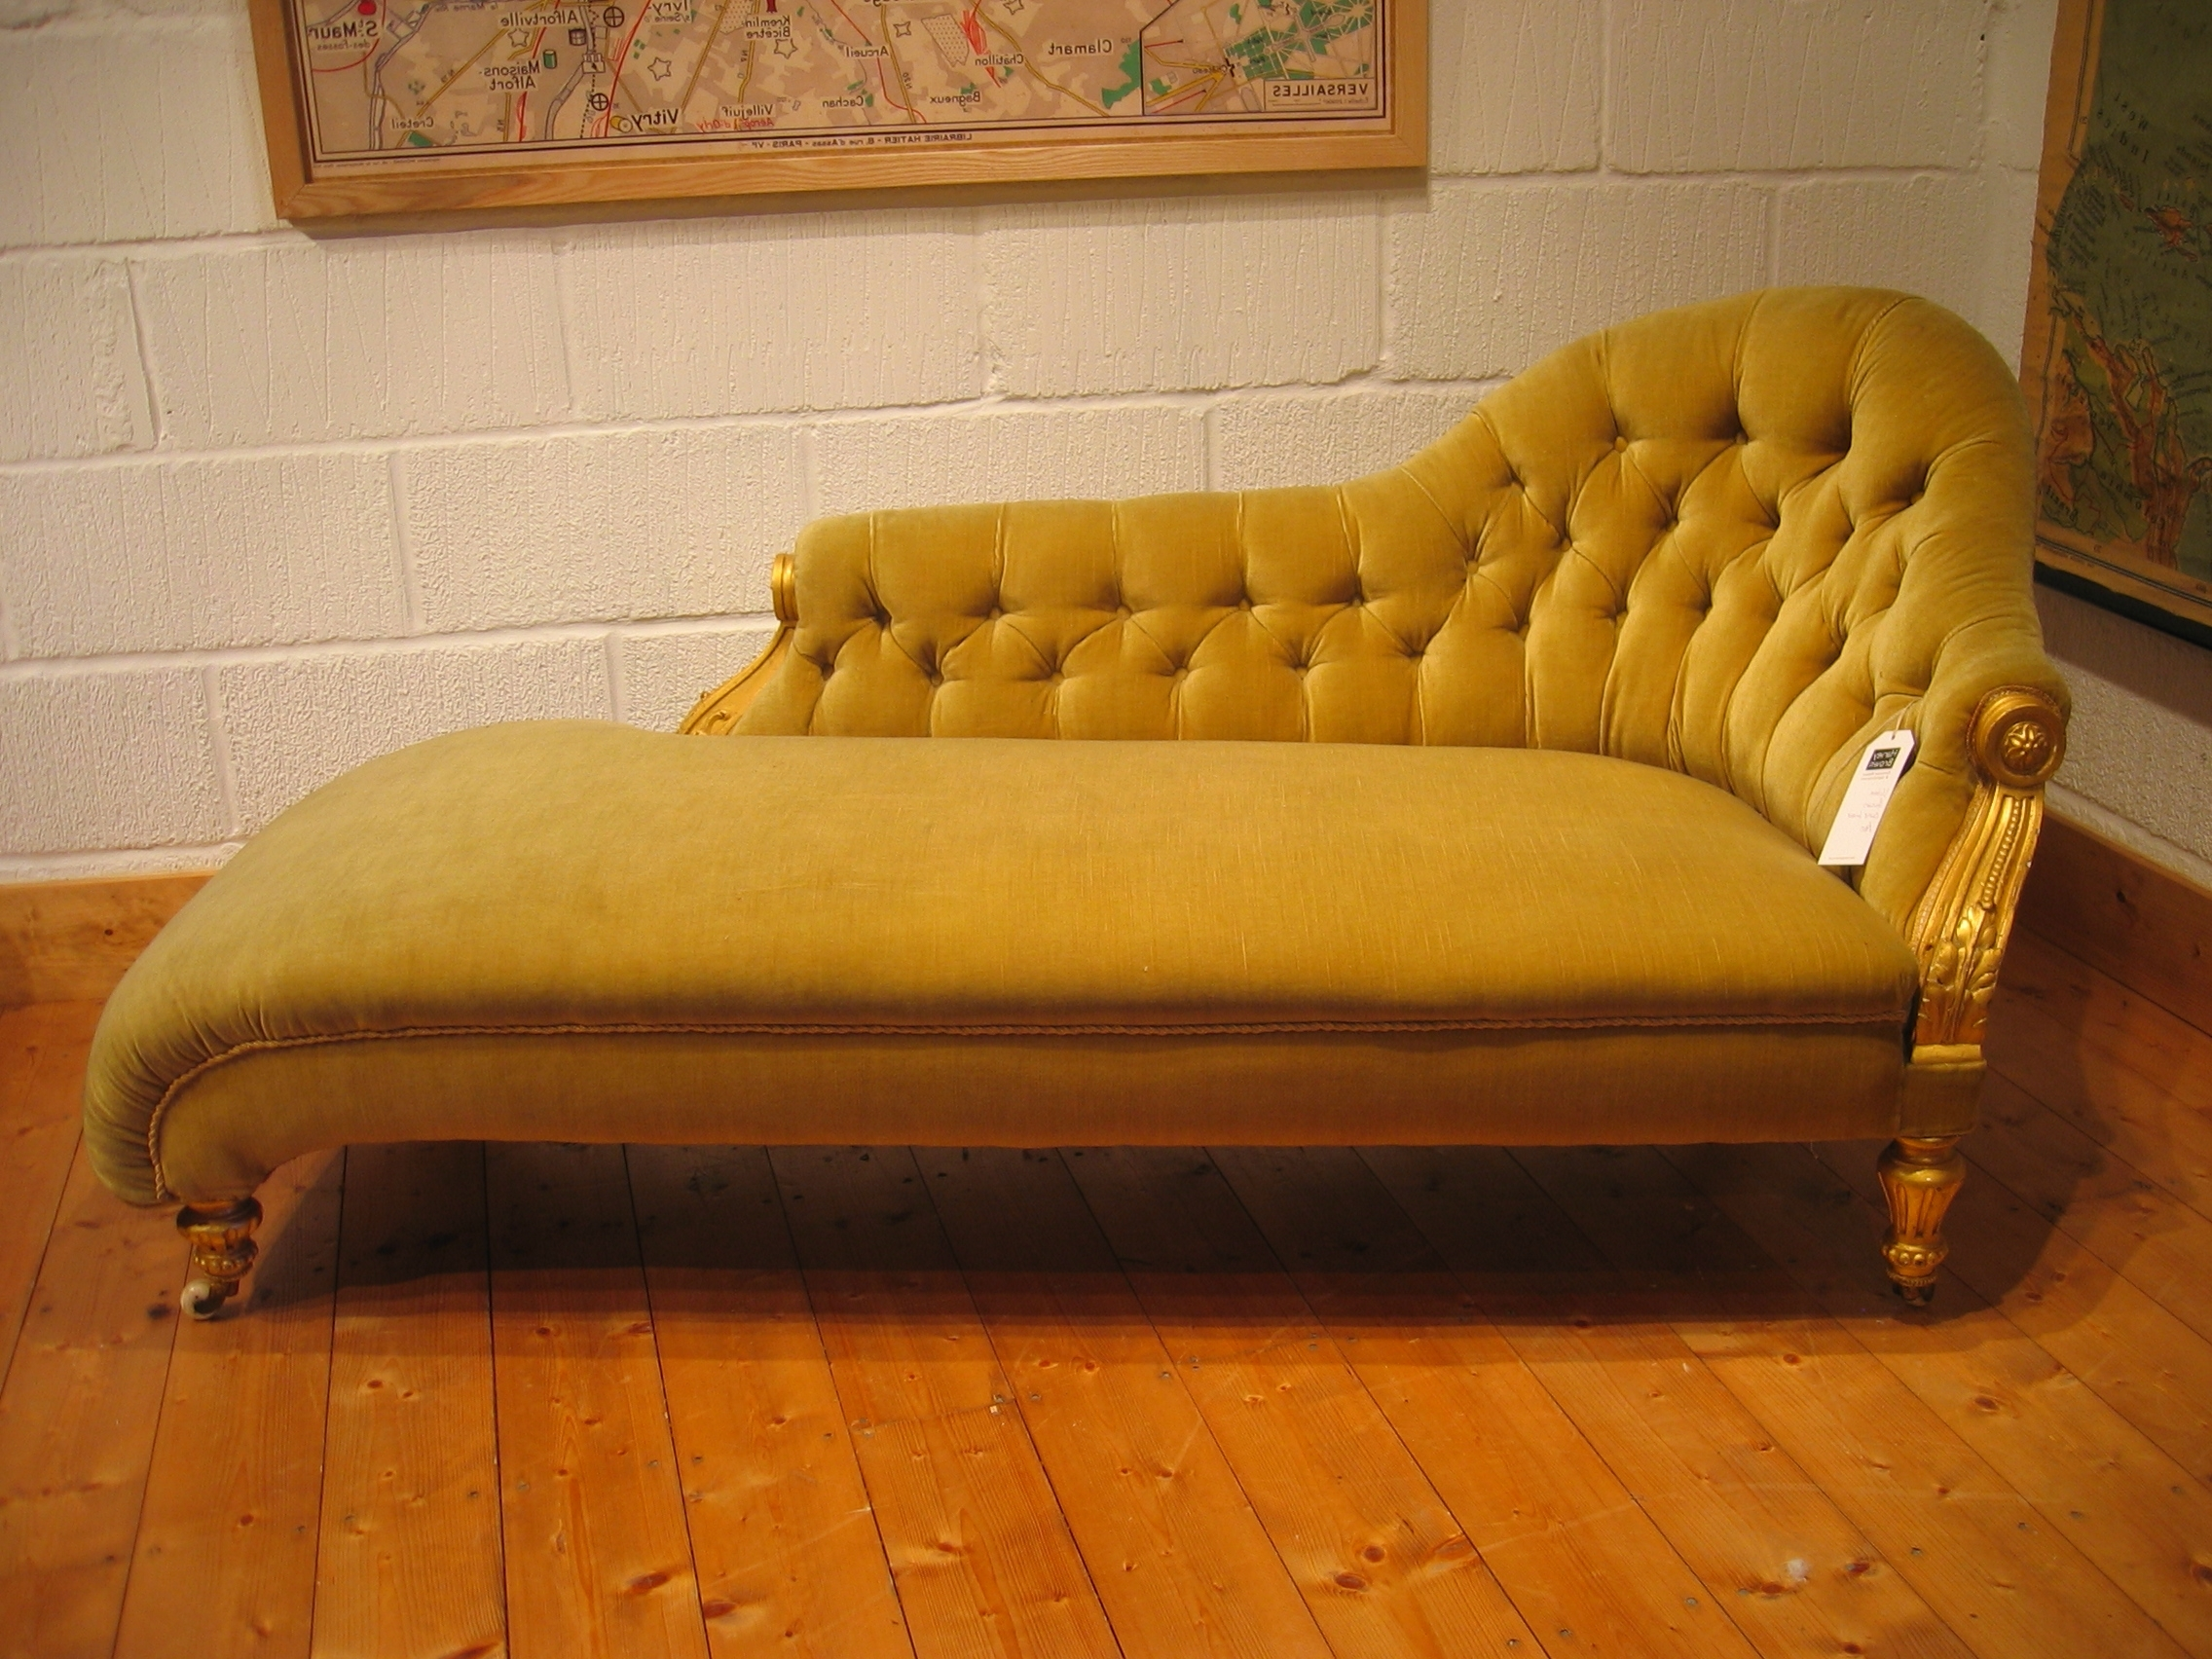 Most Up To Date Sofa : Excellent Chaise Lounge Sofa Photos Concept For Sale Throughout Chaise Lounge Sofas For Sale (View 11 of 15)